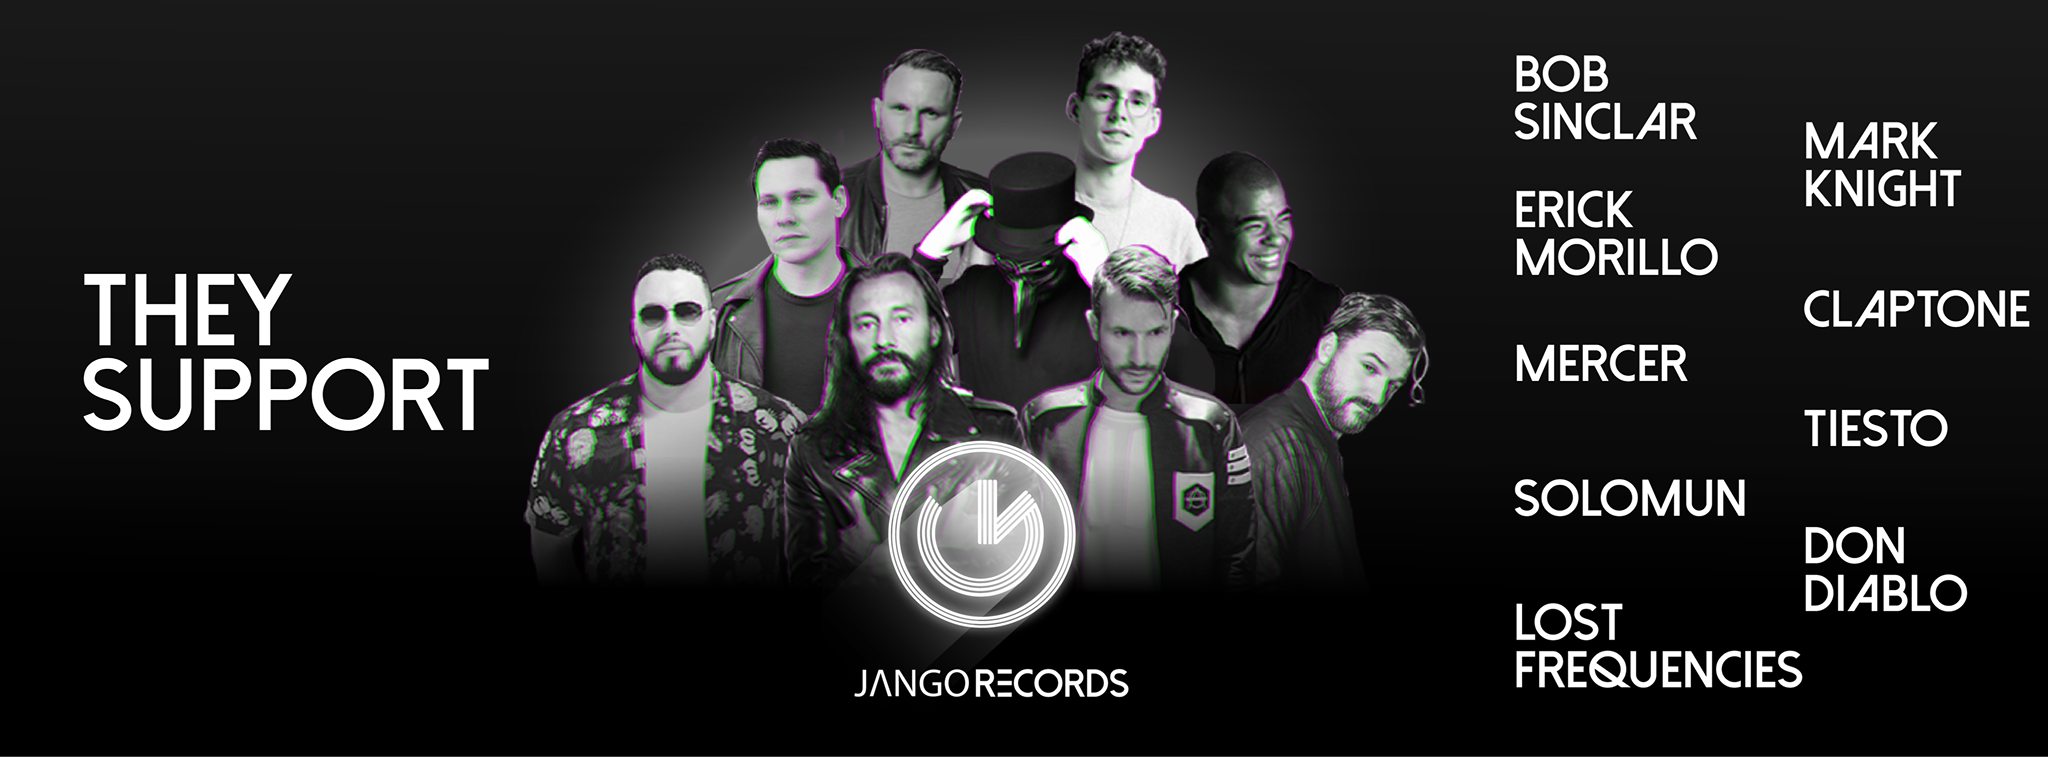 Bob Sinclar, Mark Knight, Erick Morillo, Claptone, Mercer, Tiesto, Solomun, Don Diablo, Lost Frequencies...